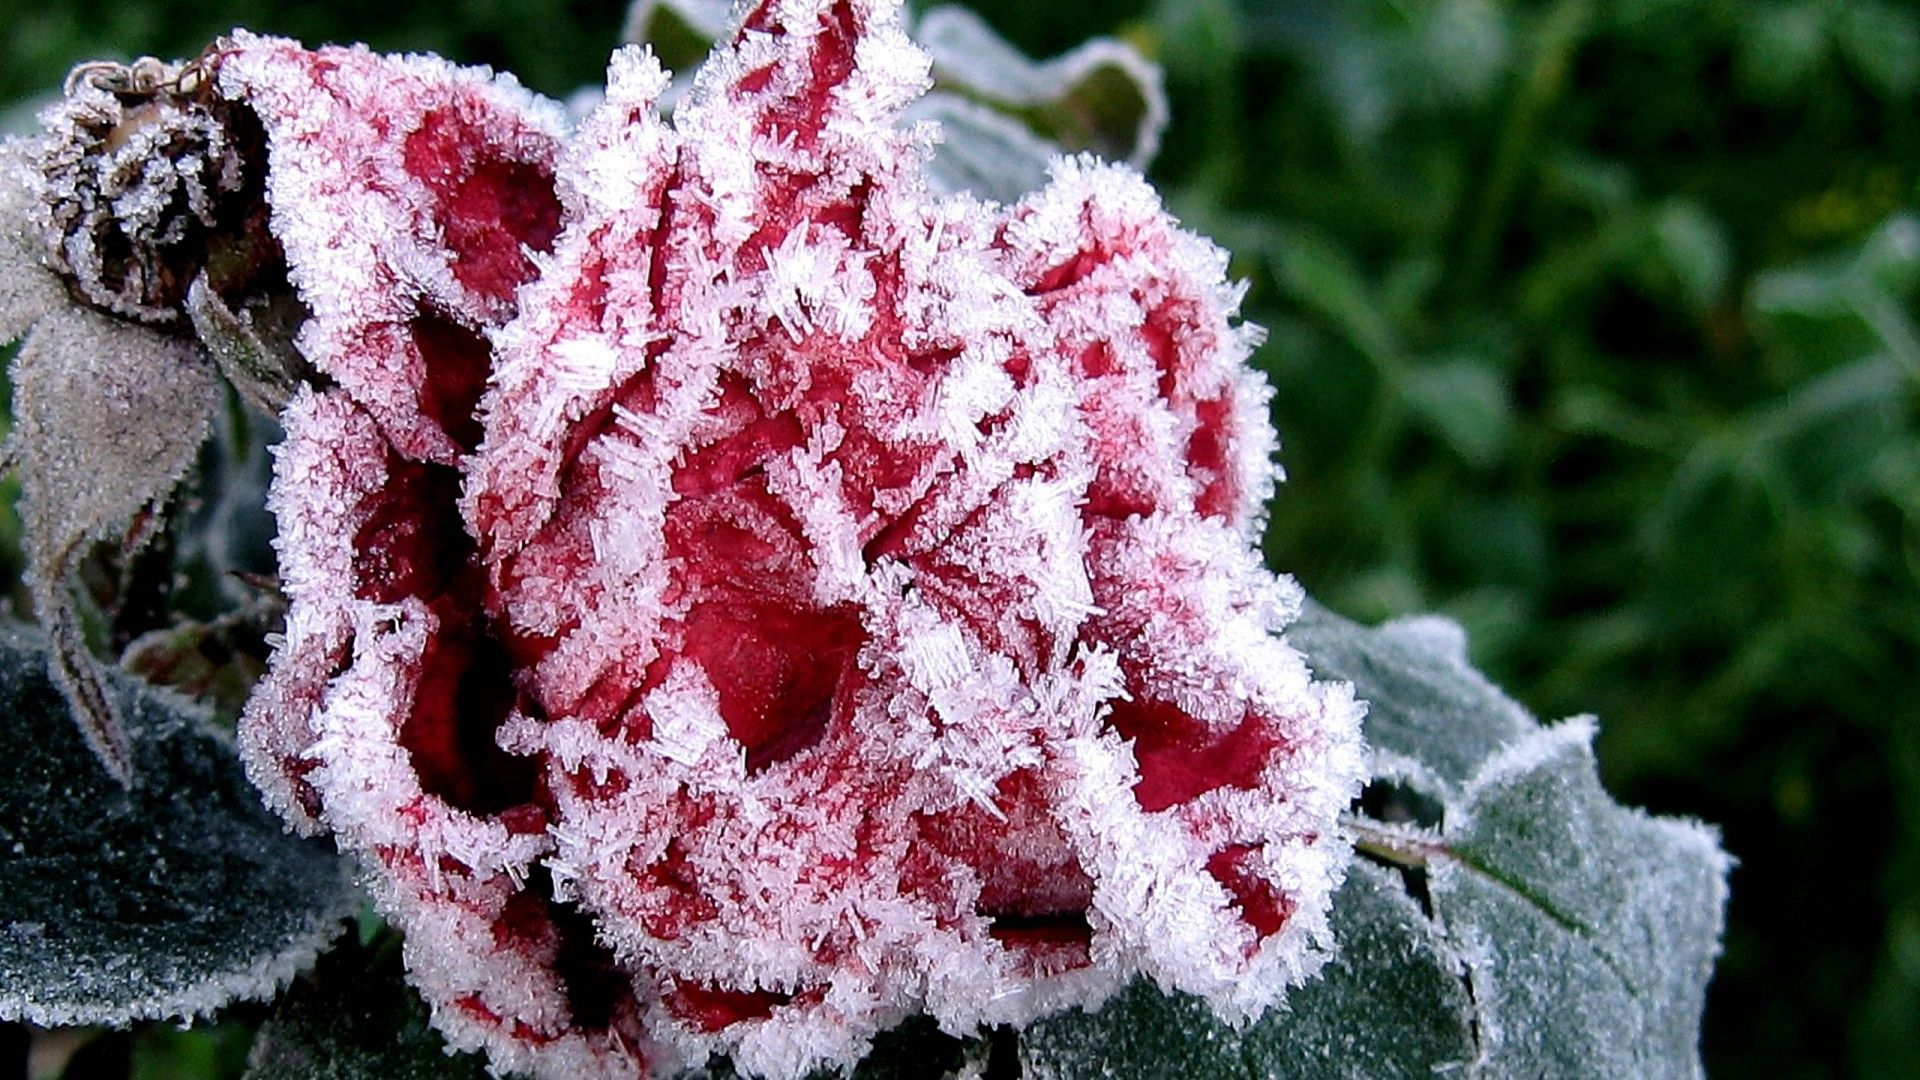 pix for > abstract ice flower wallpaper | street wear concept term 2